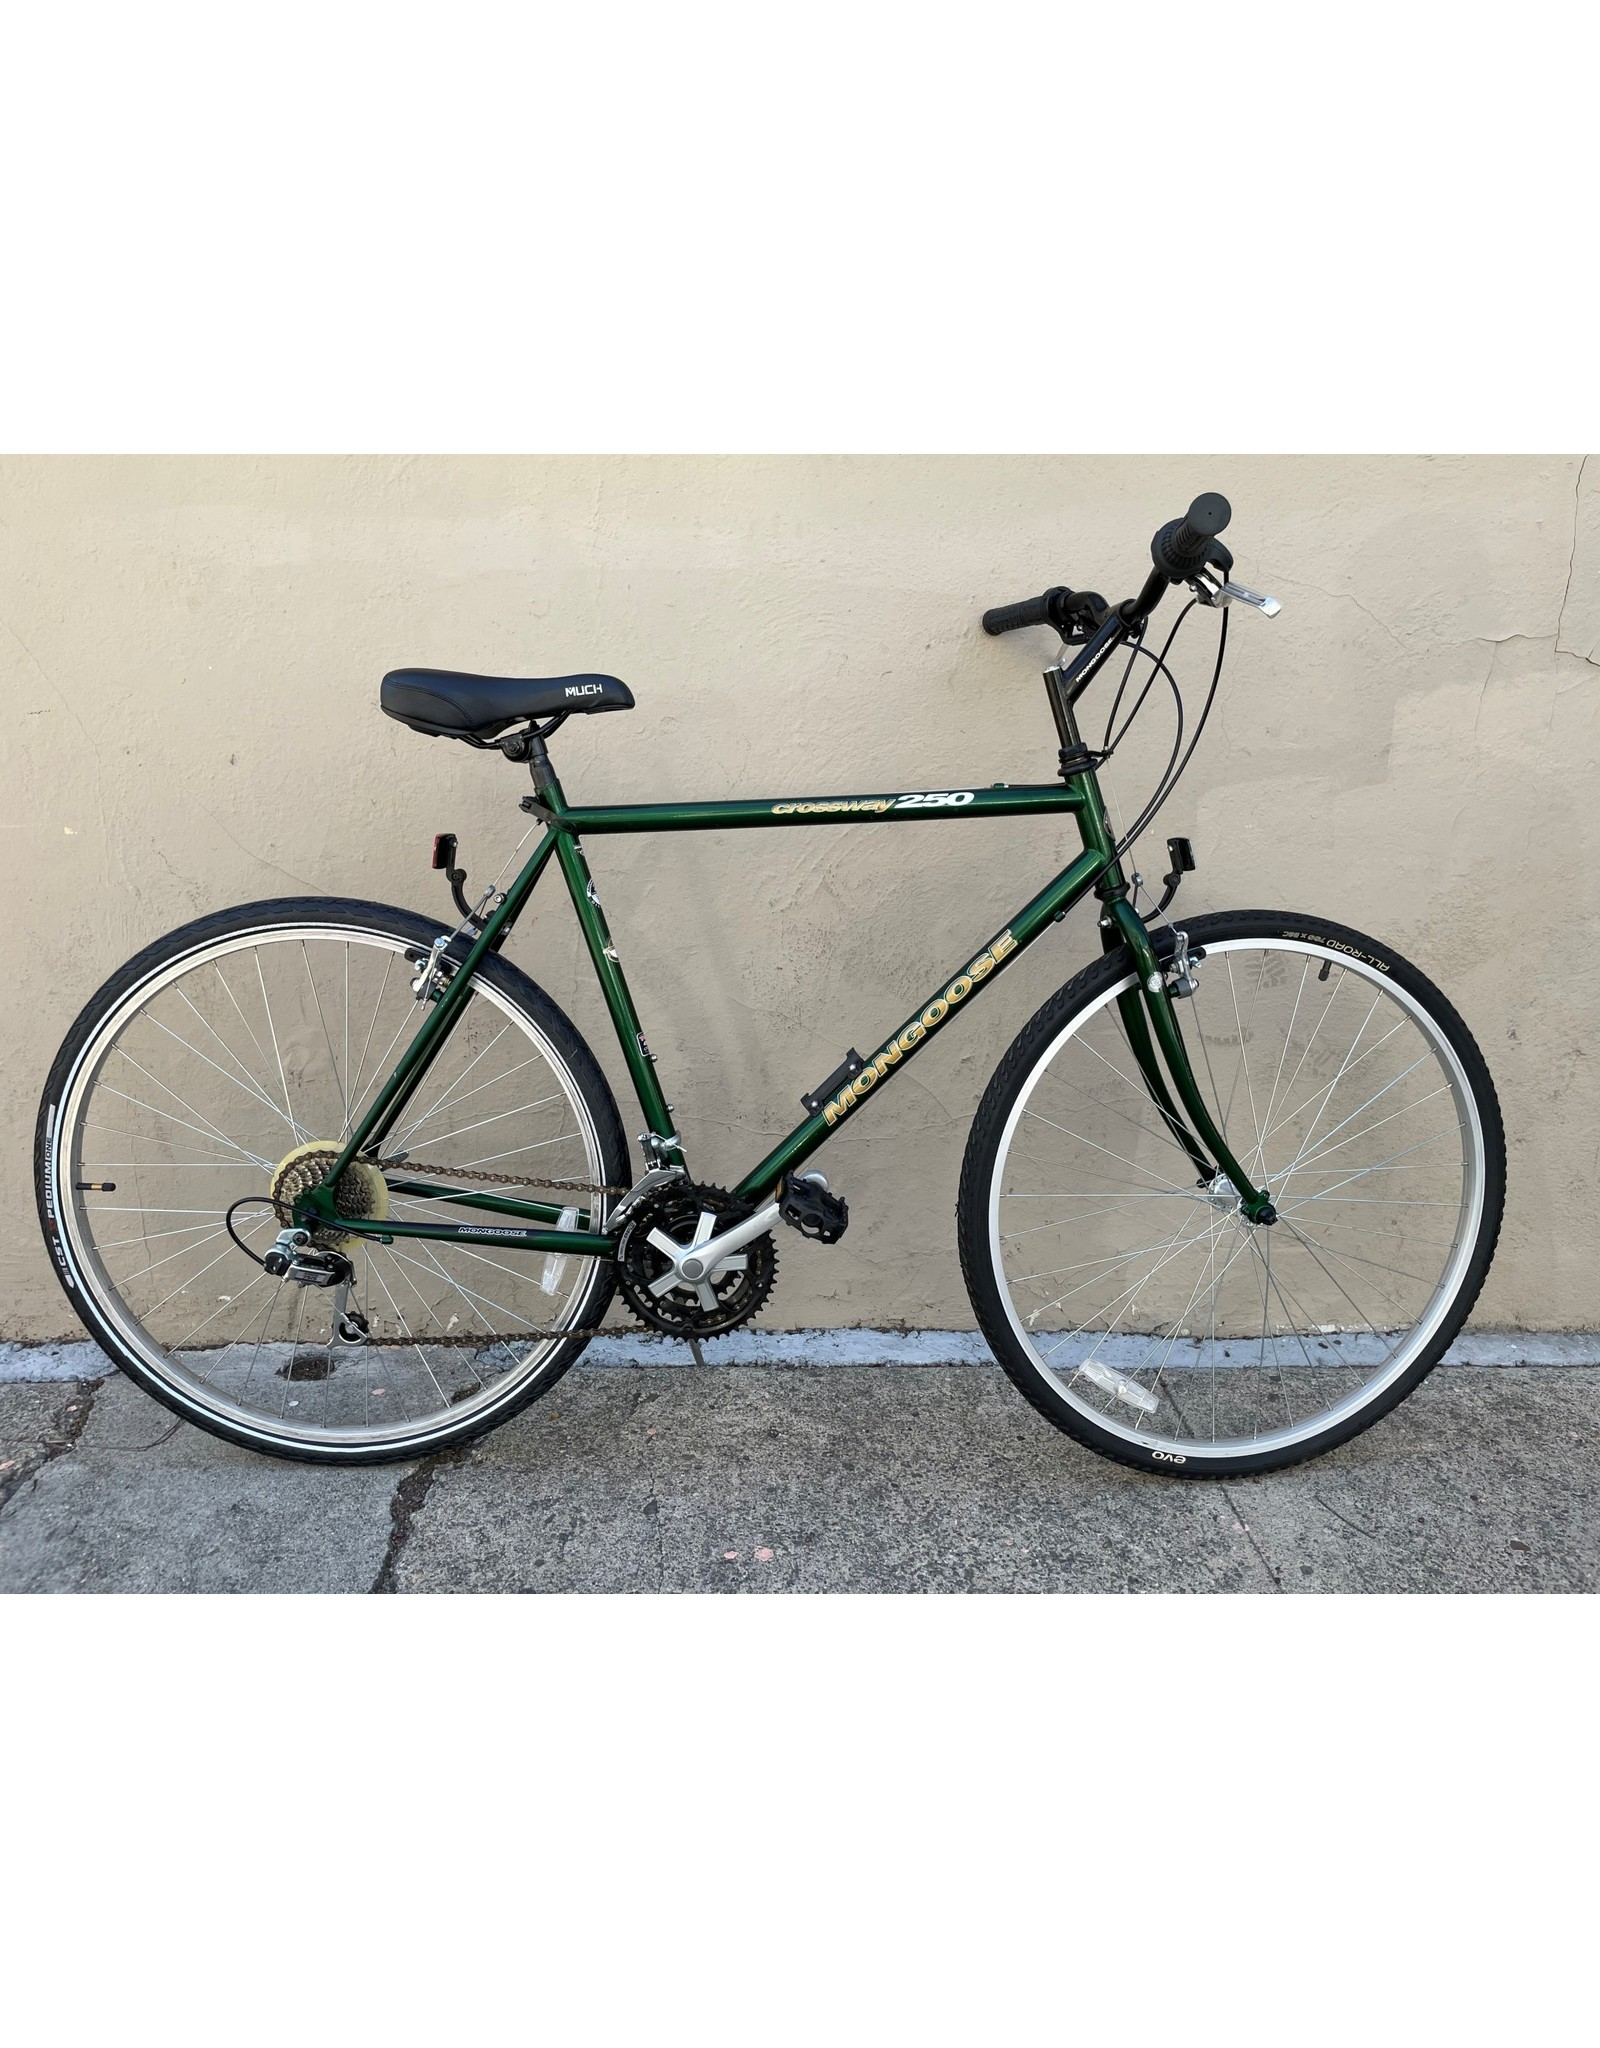 Mongoose Mongoose Crossway 250 Vintage, 1997, Green, 18 Inches